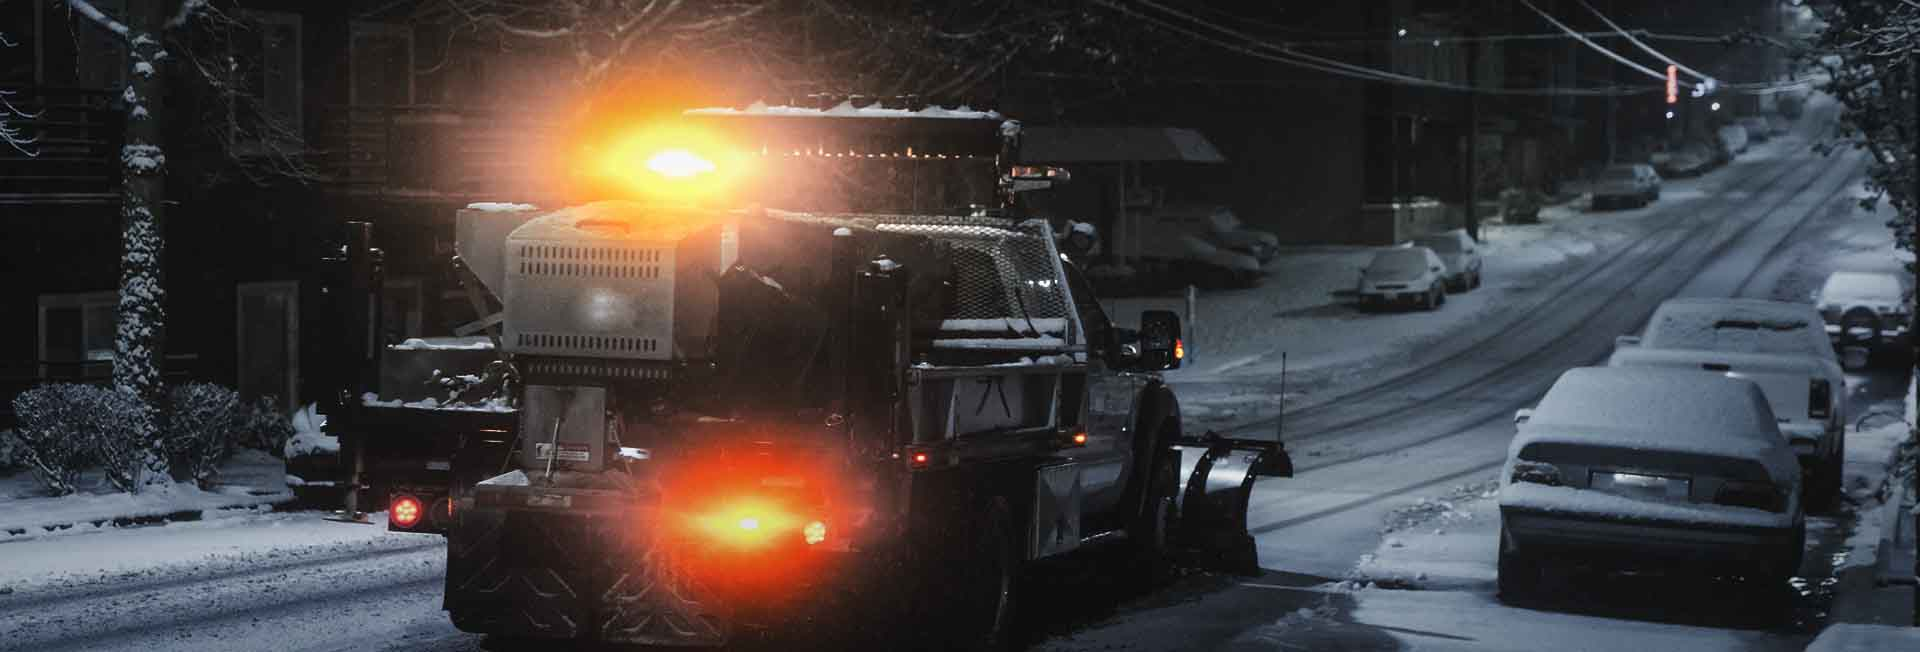 Utility Work Lights For Commercial Construction Vehicles Wiring On Truck Service